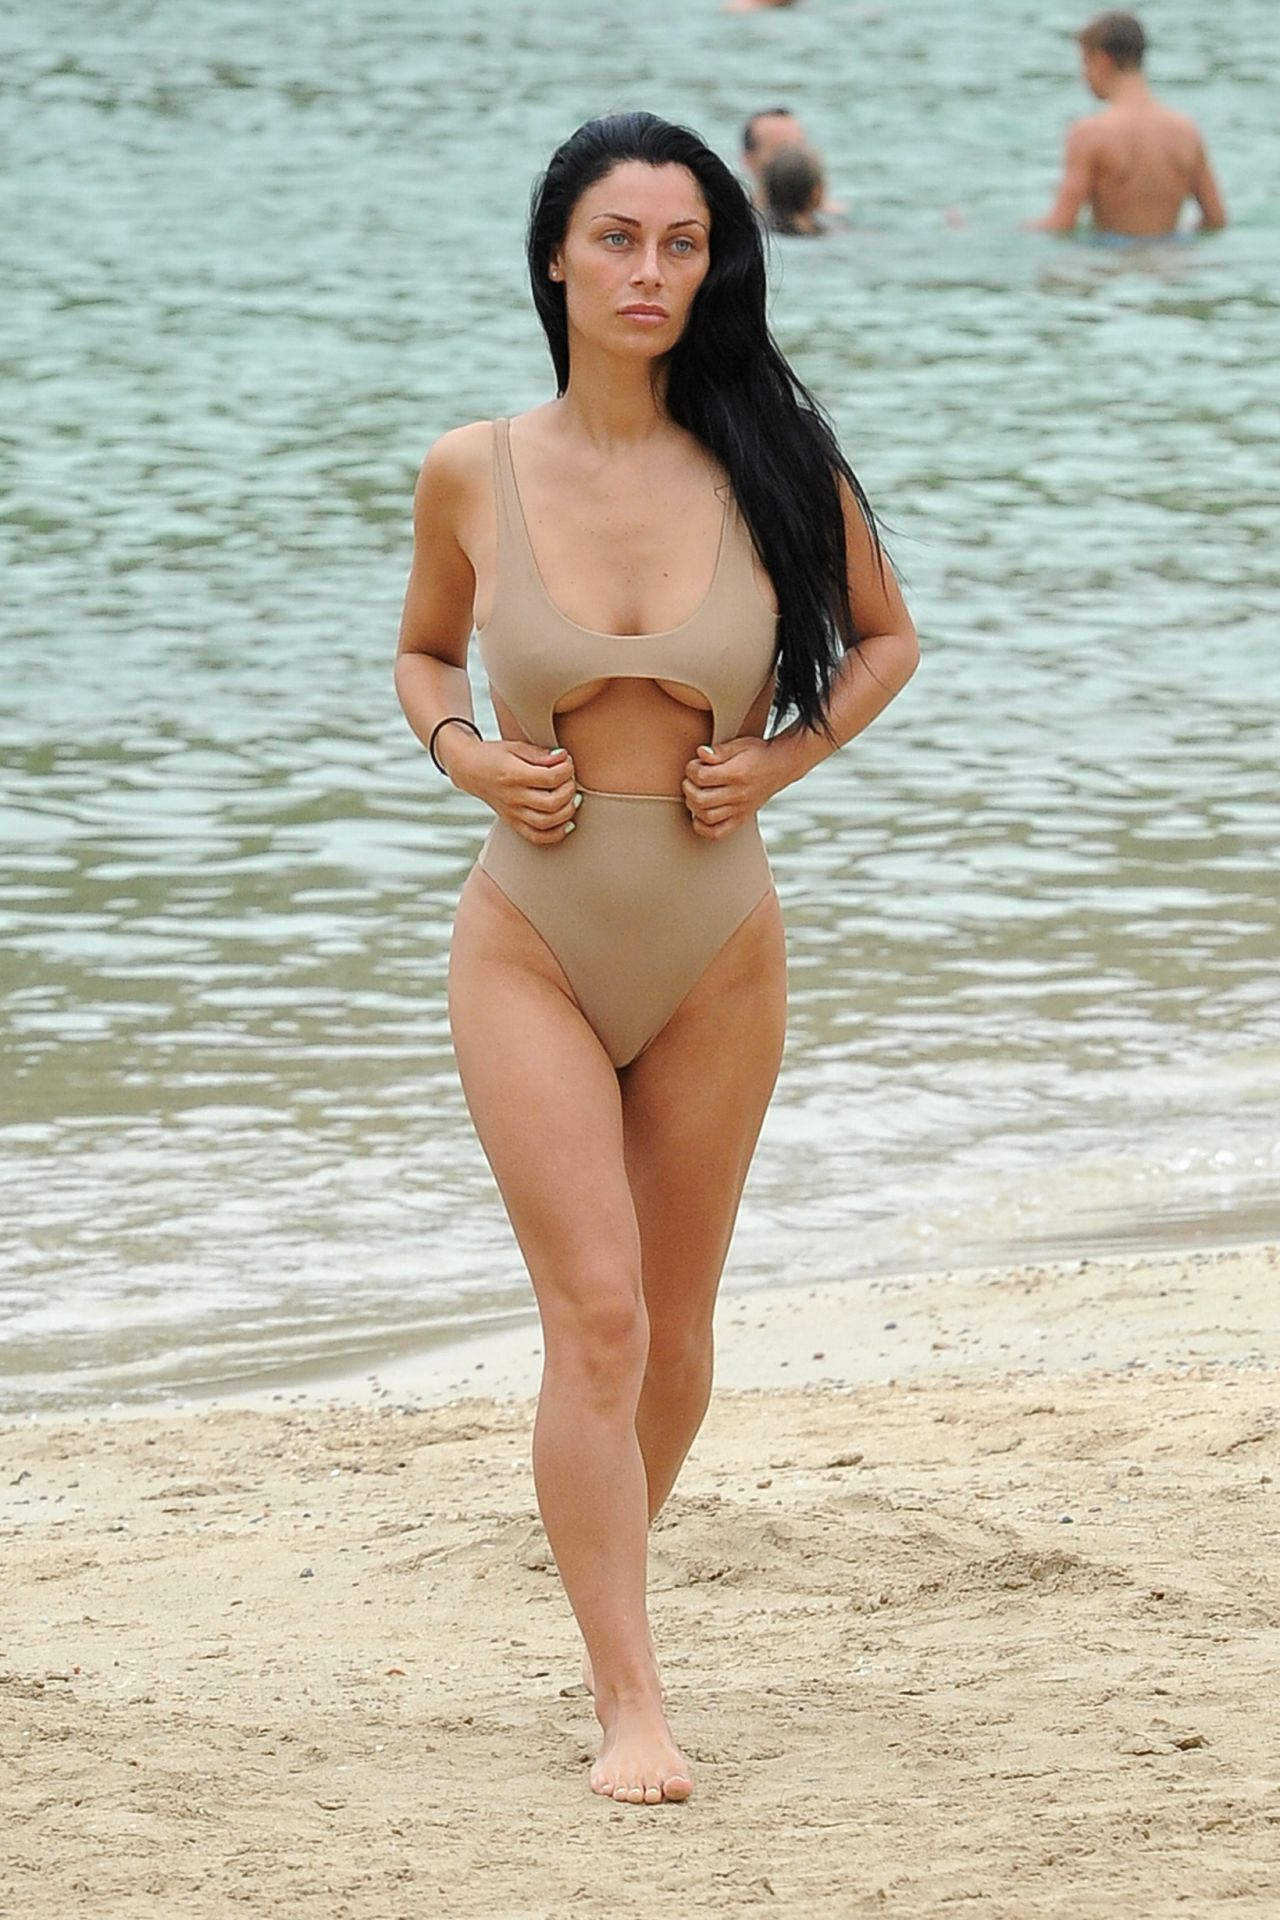 Cally Jane Beech In Swimsuit Flaunting Her Post Baby Body